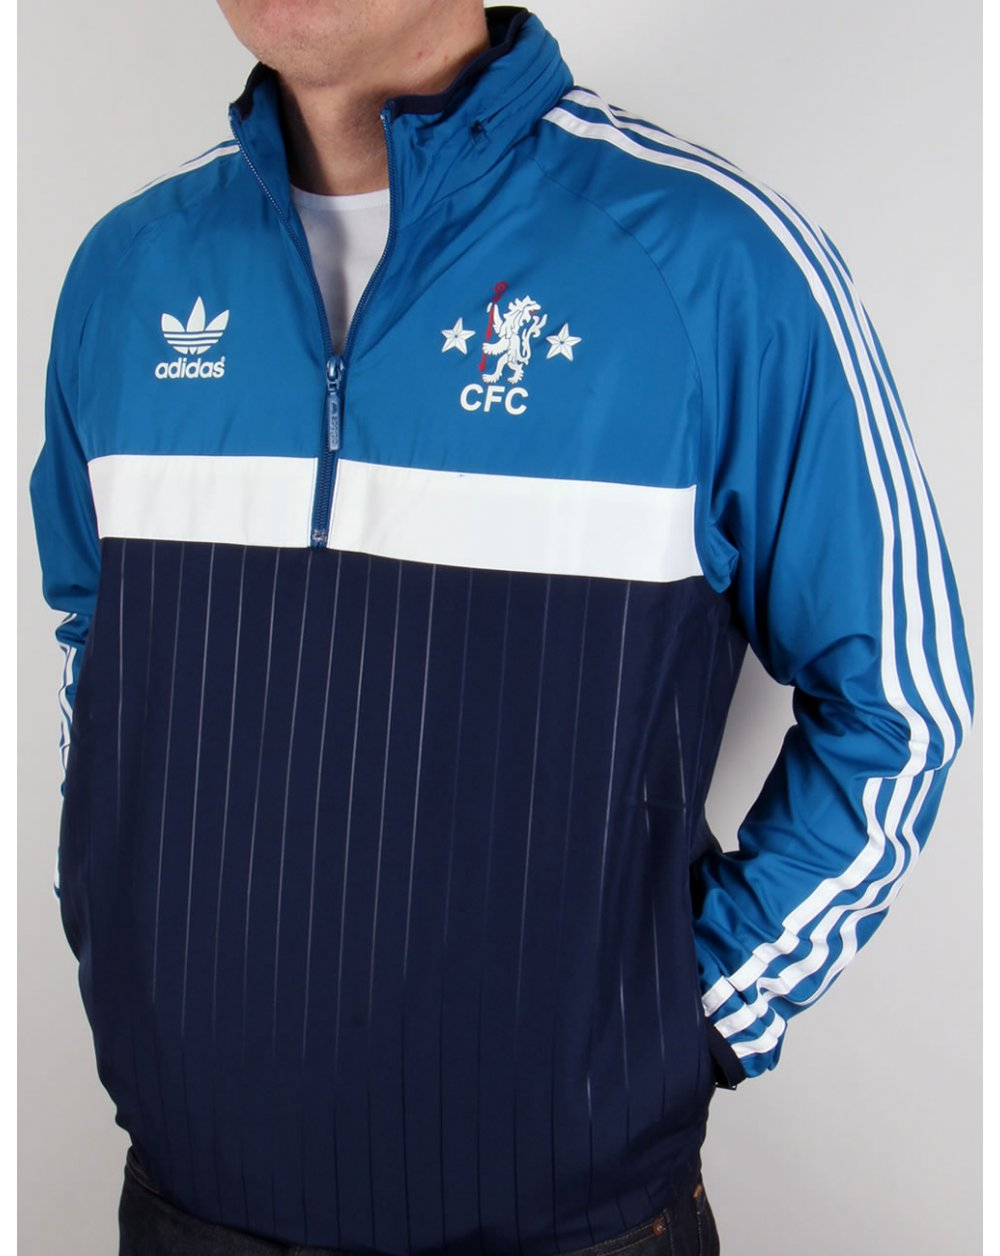 Adidas Originals Chelsea Fc Half Zip Windbreaker Navy,jacket,coat 24a5cb7387